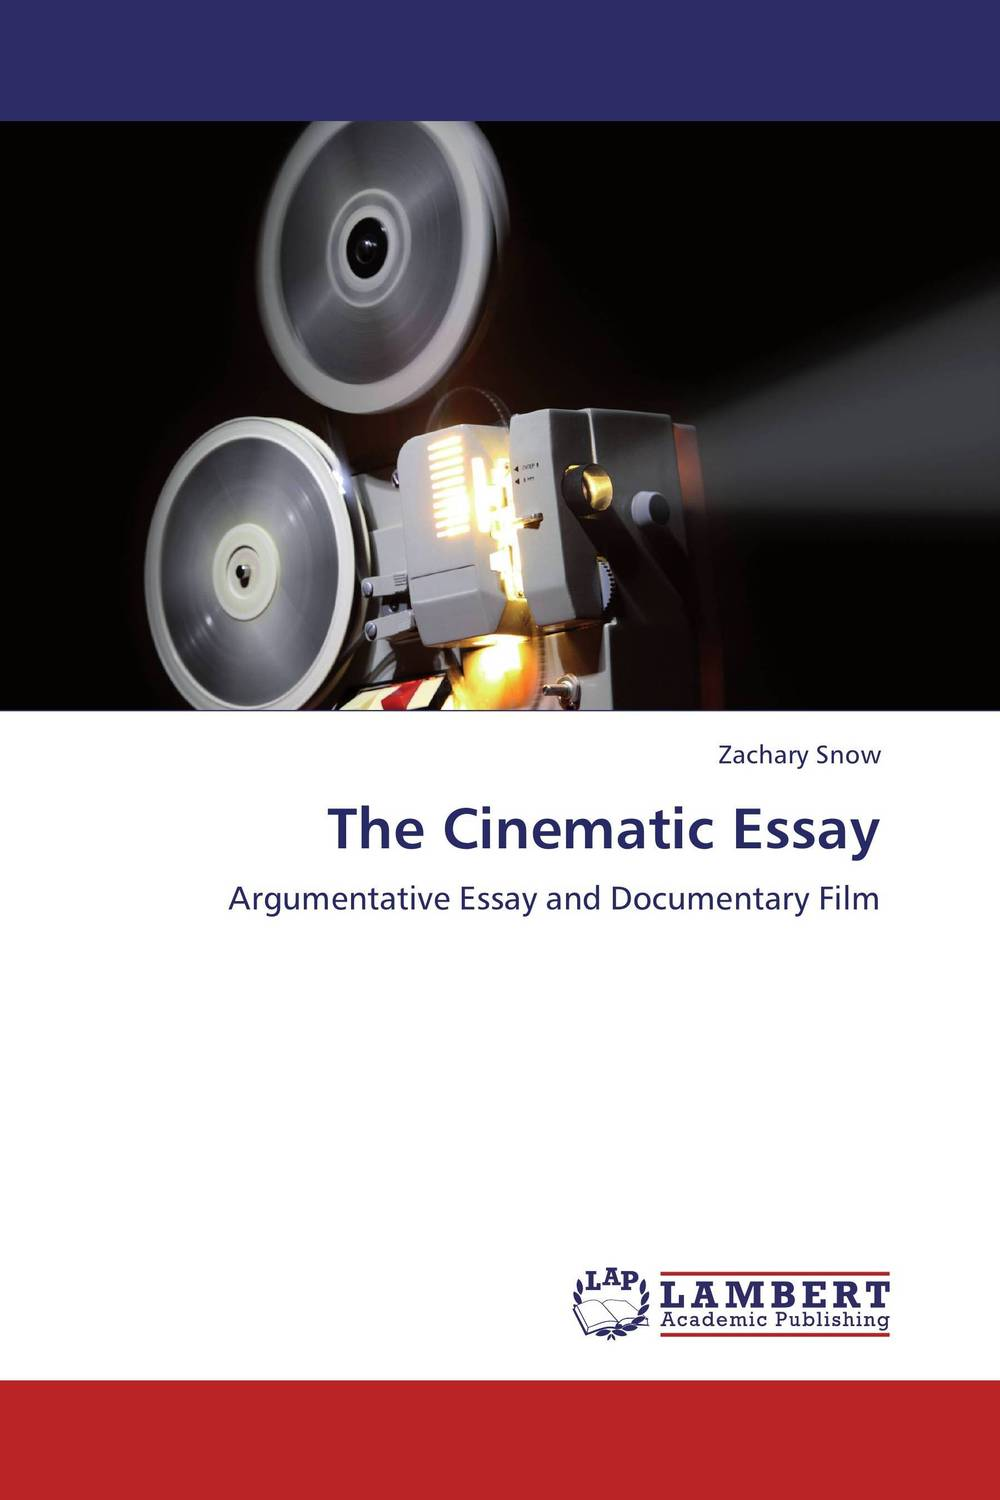 The Cinematic Essay